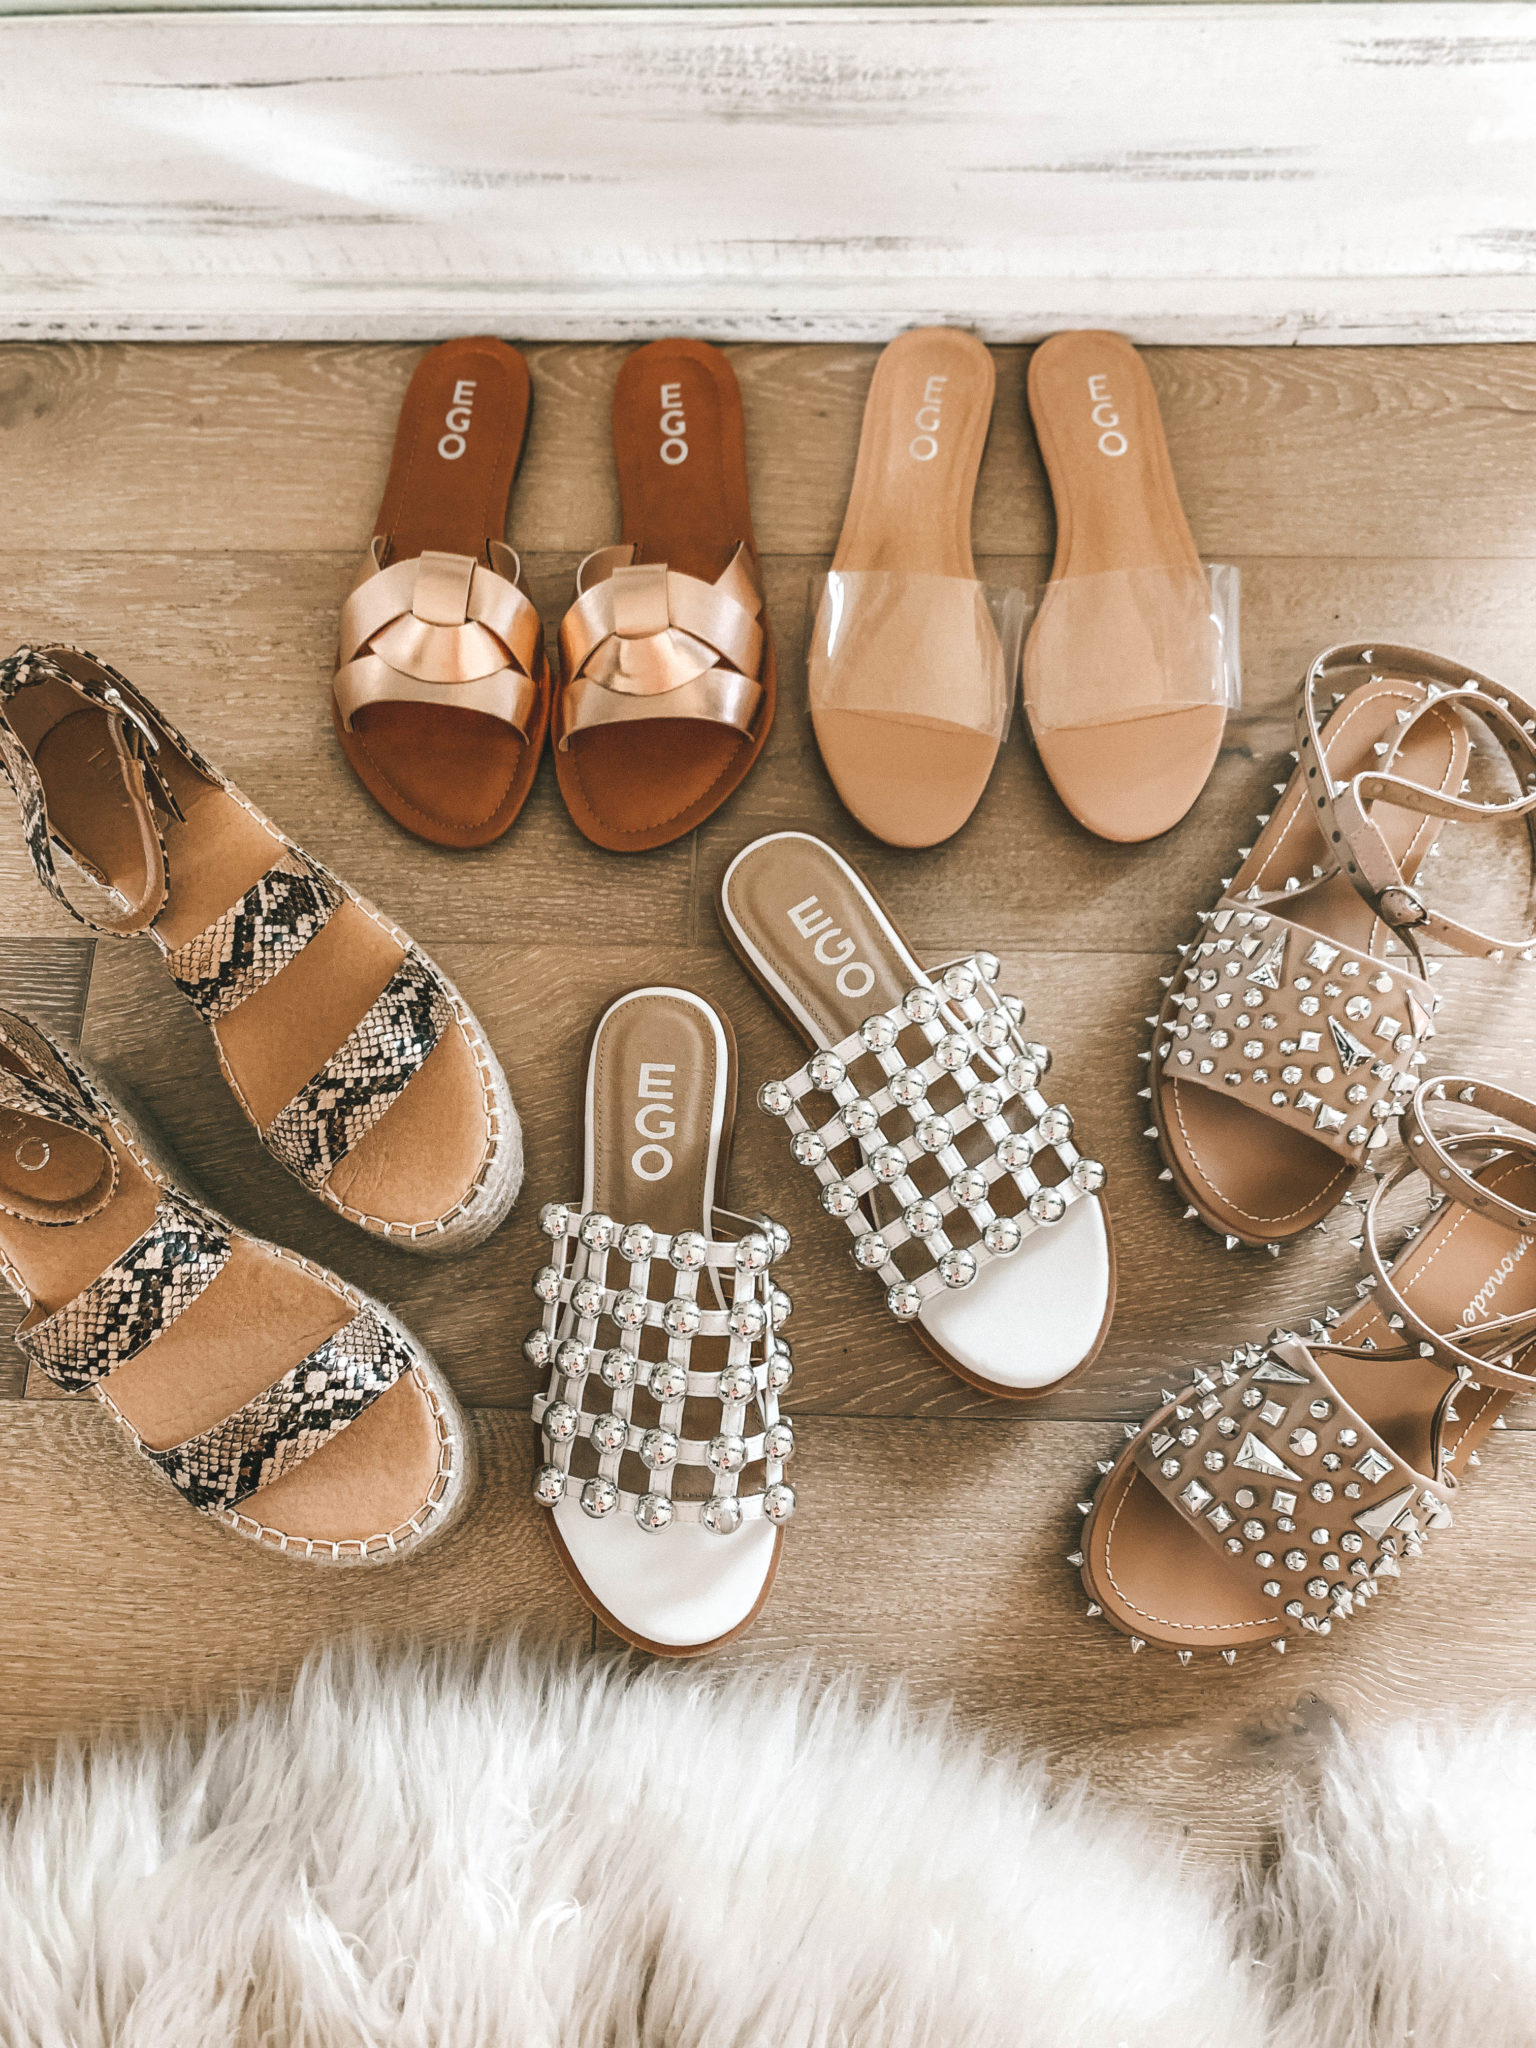 5 Must Have Affordable EGO Sandals for Summer by popular Austin fashion blog, Dressed to Kill: image of 5 pairs of EGO sandals grouped together on a wood floor.